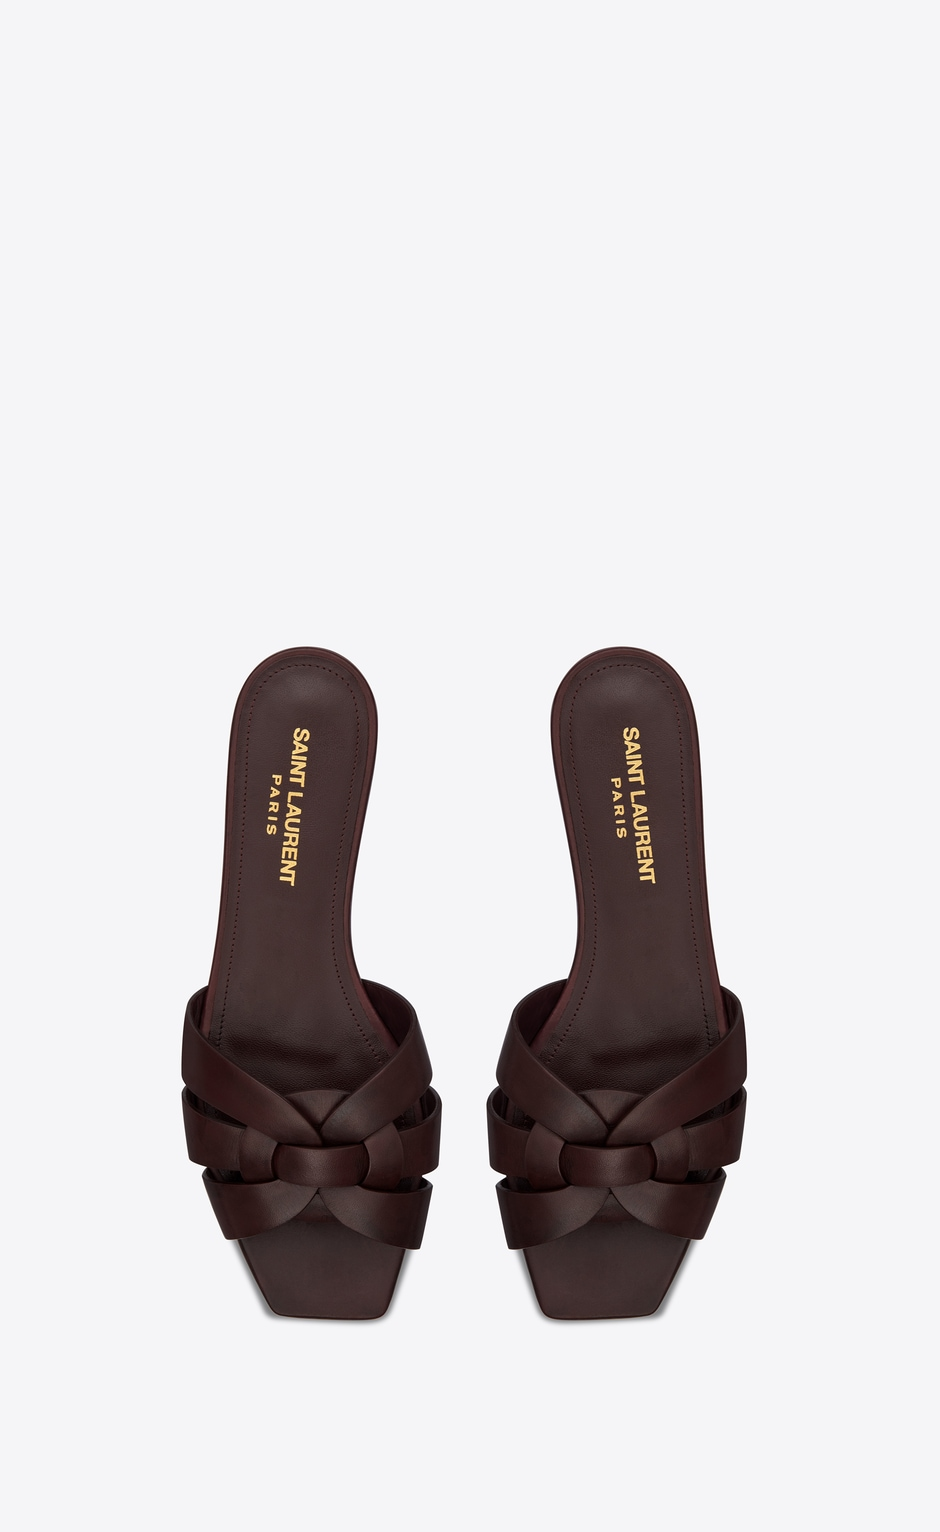 Tribute Flat Sandals In Smooth Leather In 2020 Saint